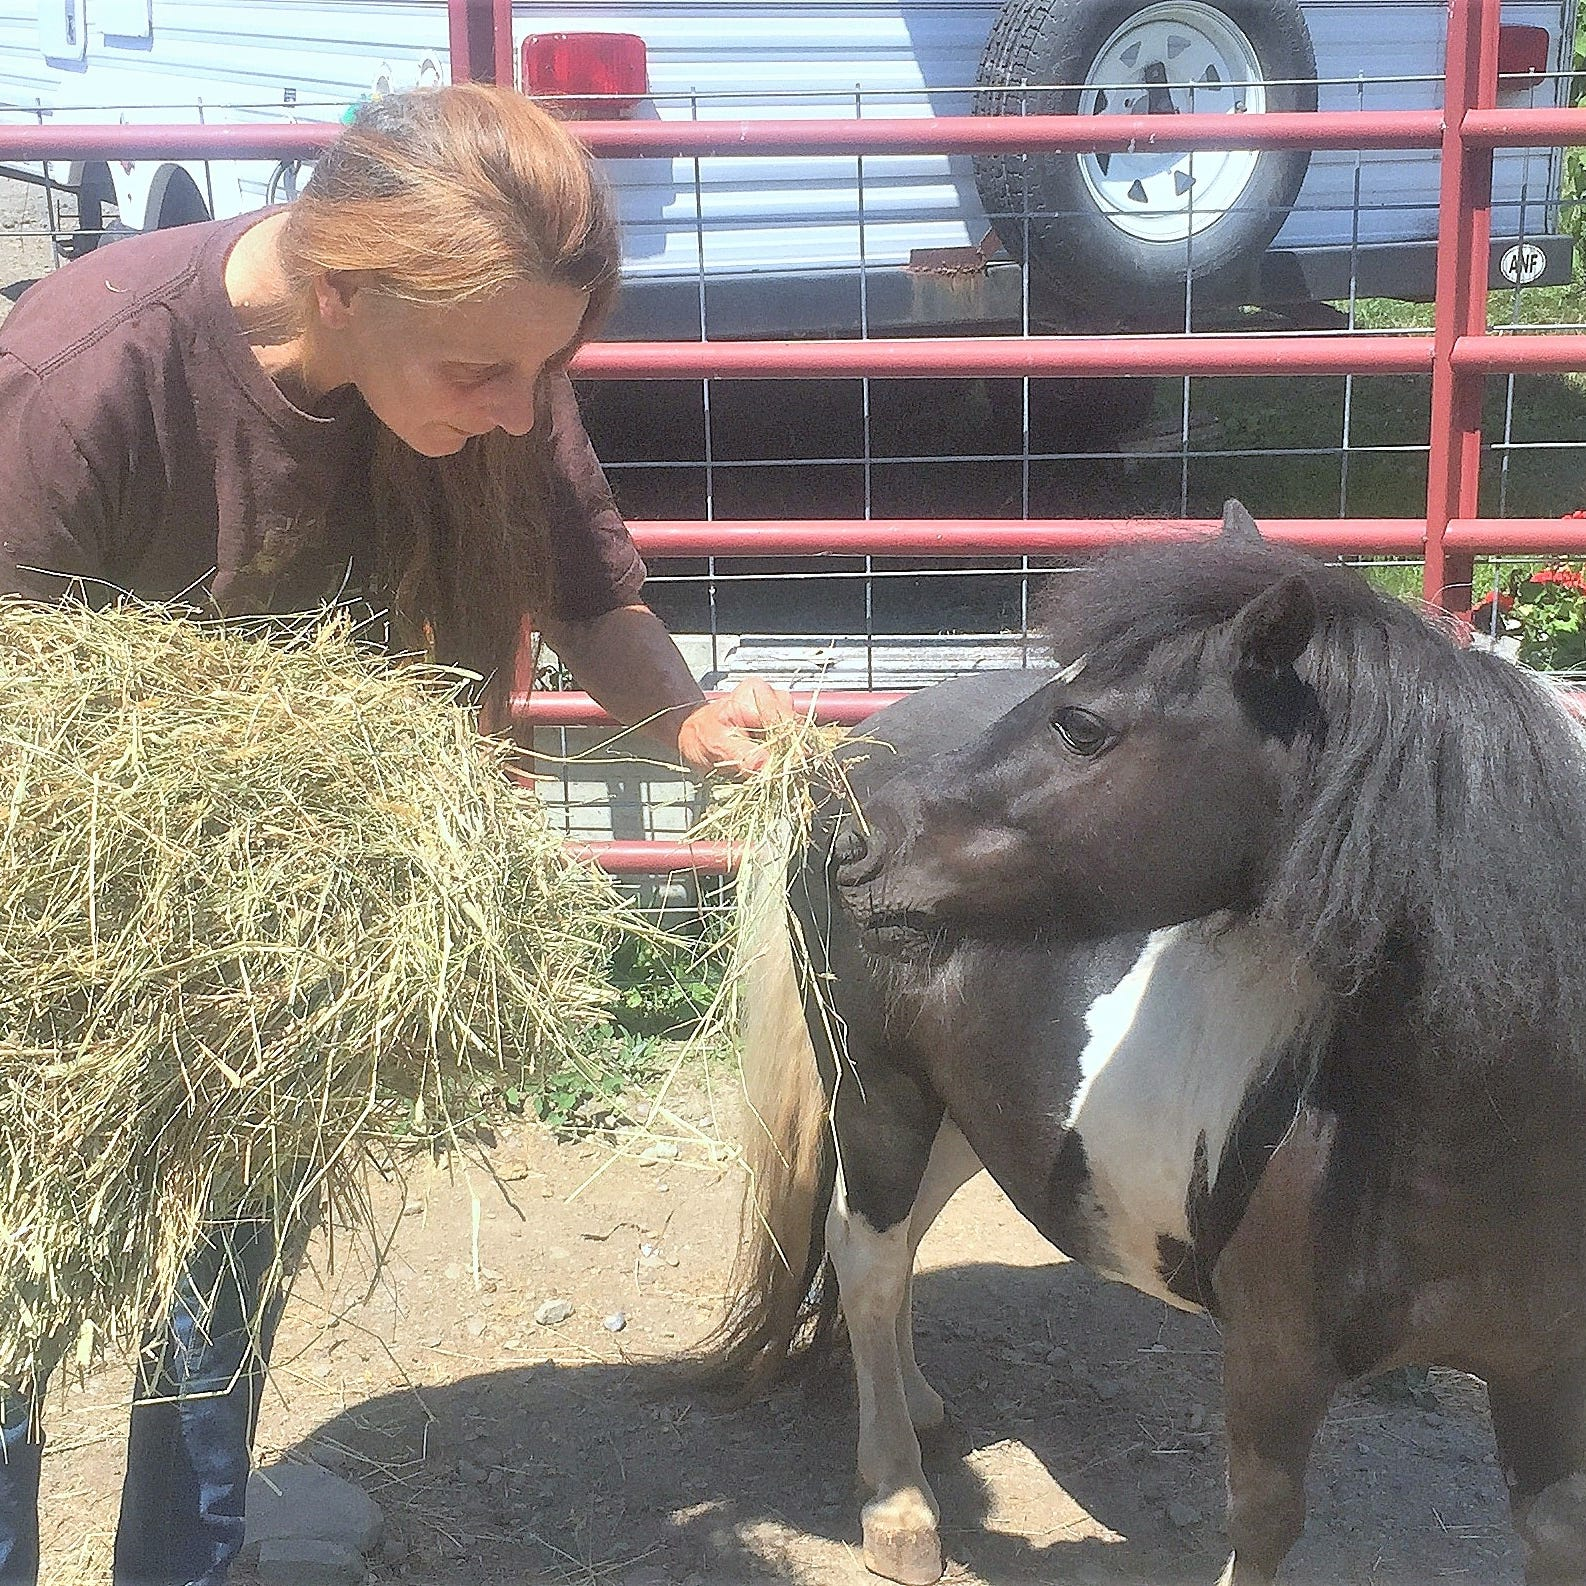 Linda Reichel, operator of A Voice For All Animals/Second Chance Ranch, feeds hay to miniature horse Toby, one of the farm animals in her care.